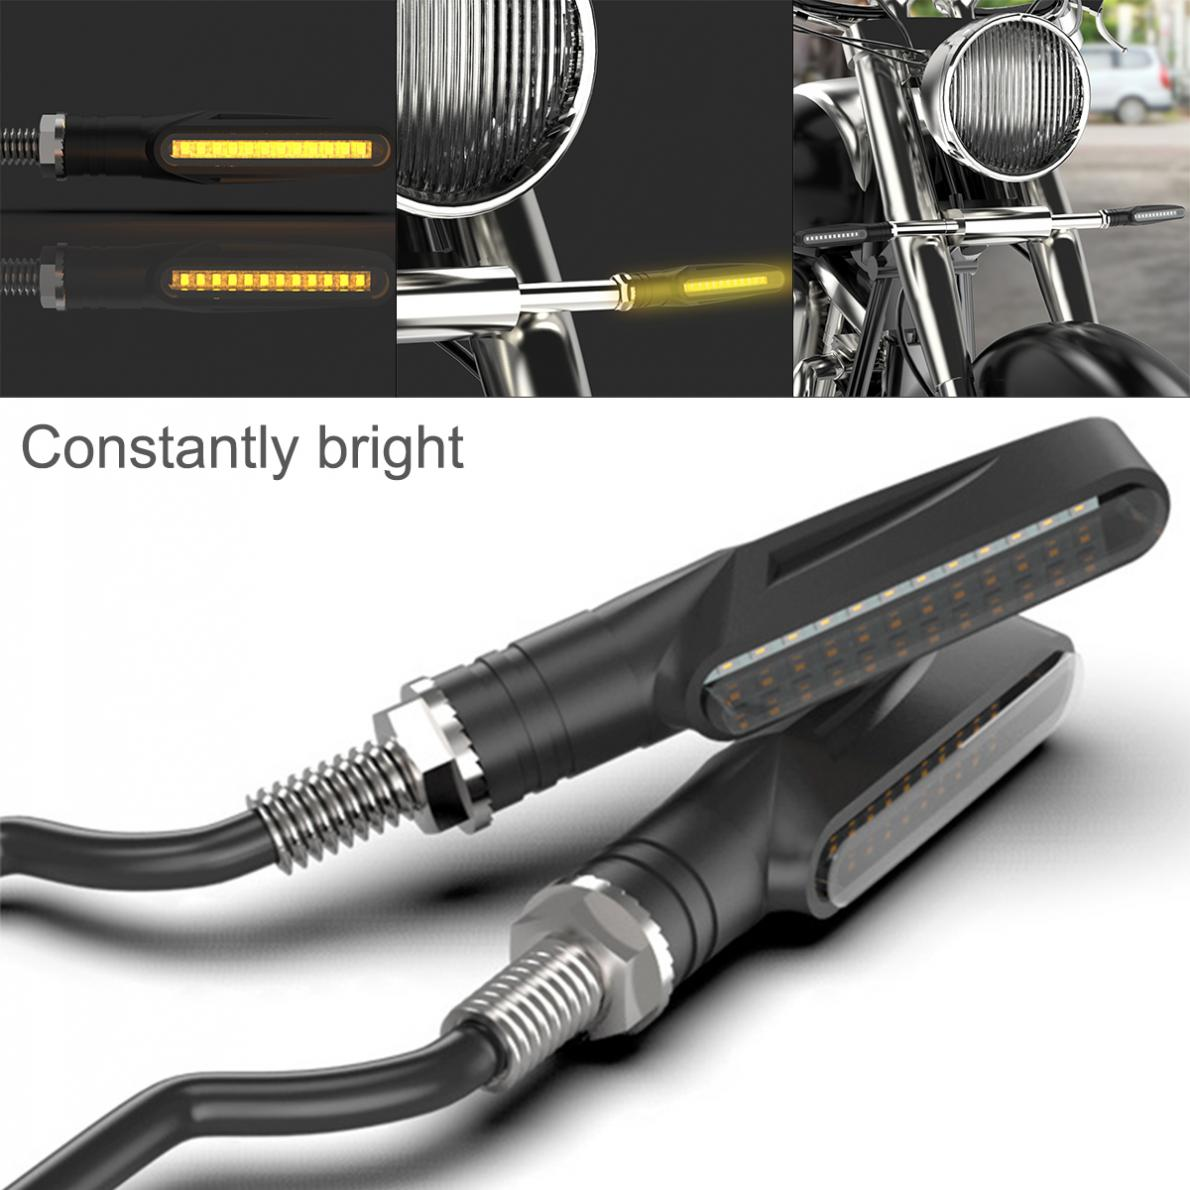 LED Motorcycle Turn Signals Light Bulb Blinker Flashing Indicator Bendable Motorbike Tail Stop Signal Lamp